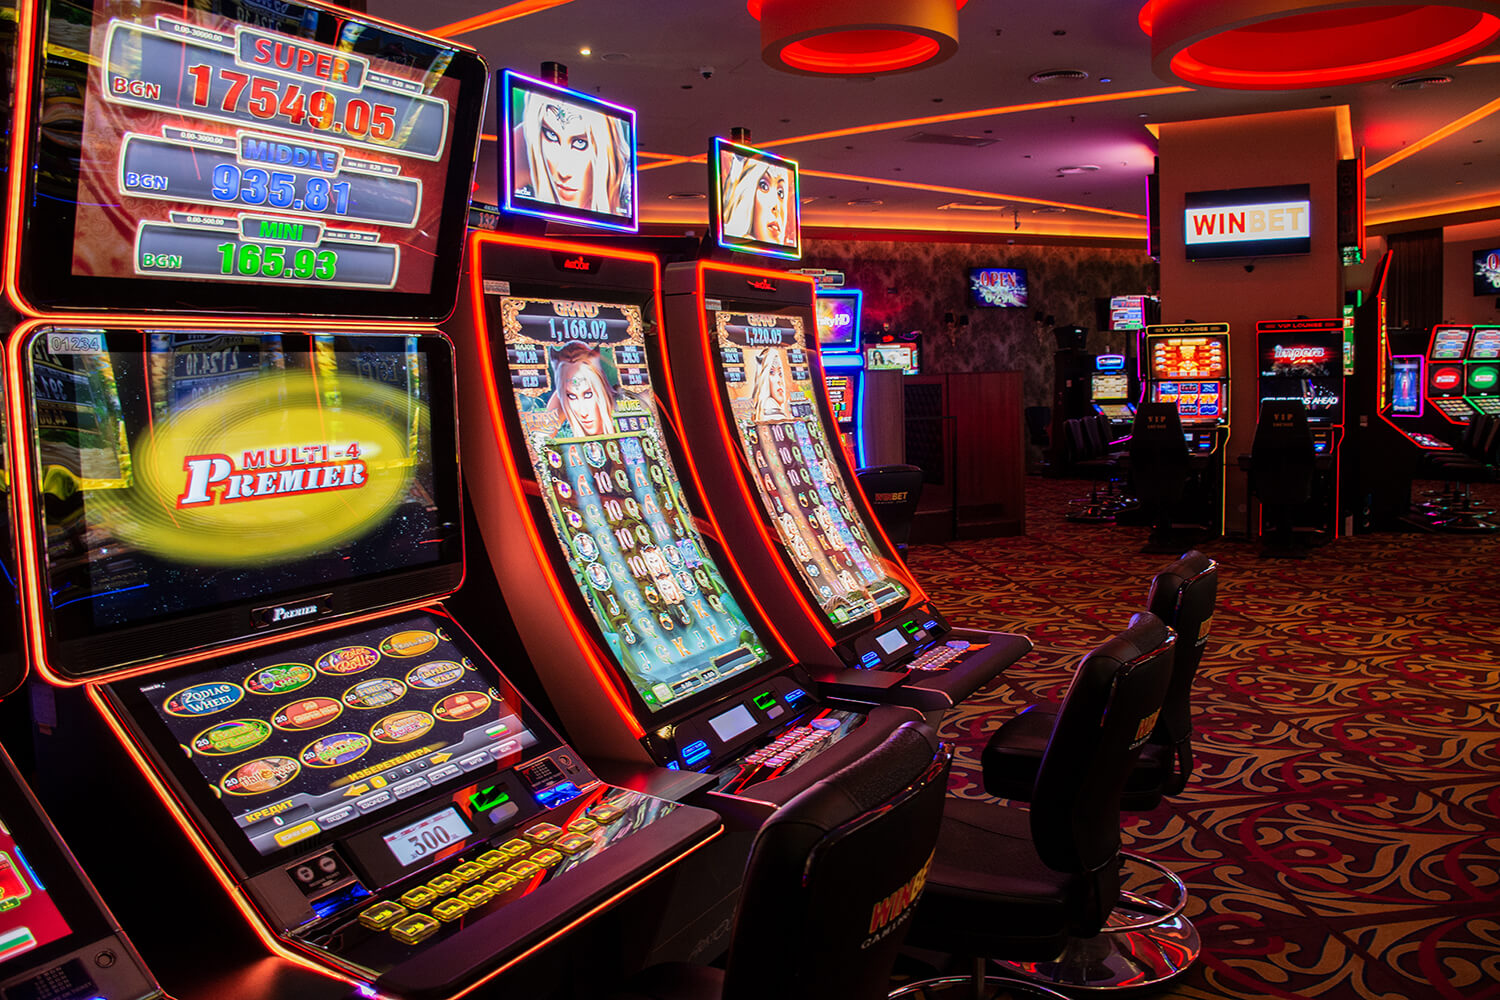 About counterfeiting slot machines